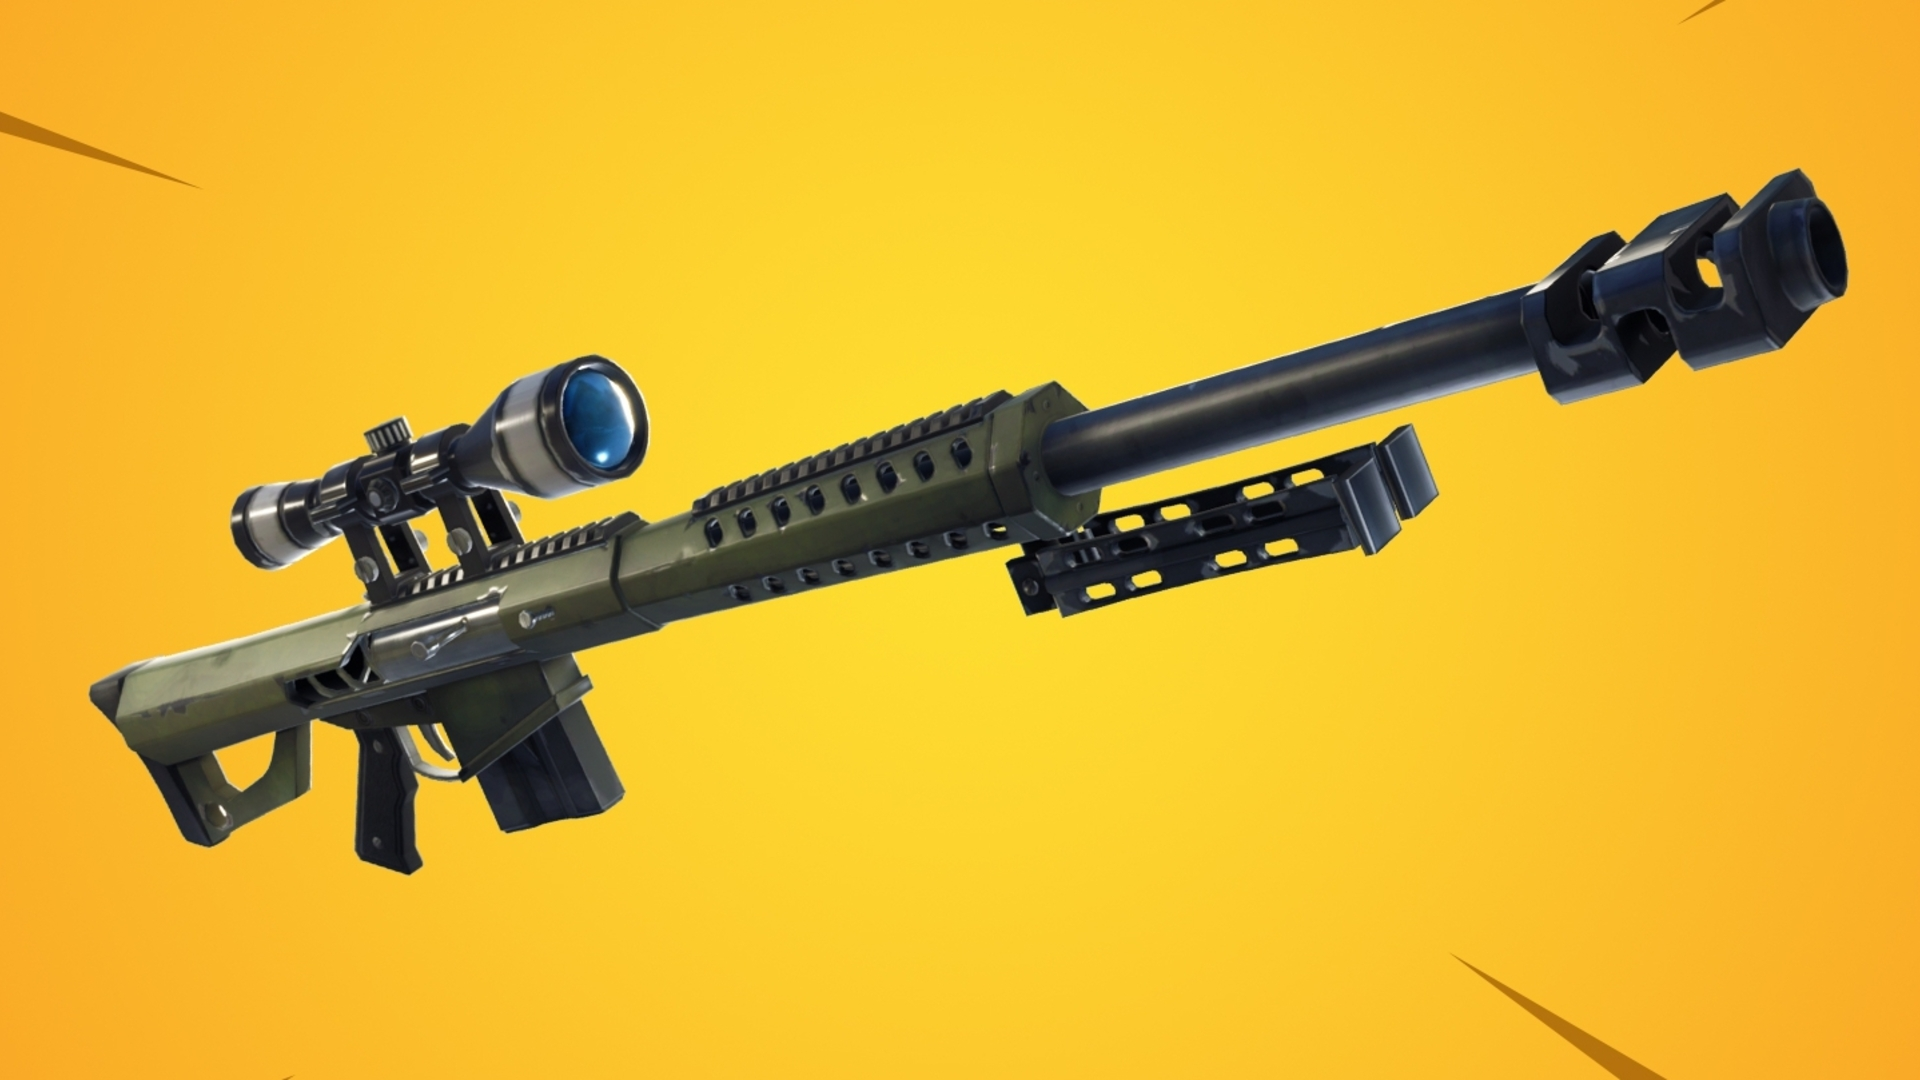 Fortnite Best Weapons Our Tier List For The Best Fortnite Loot